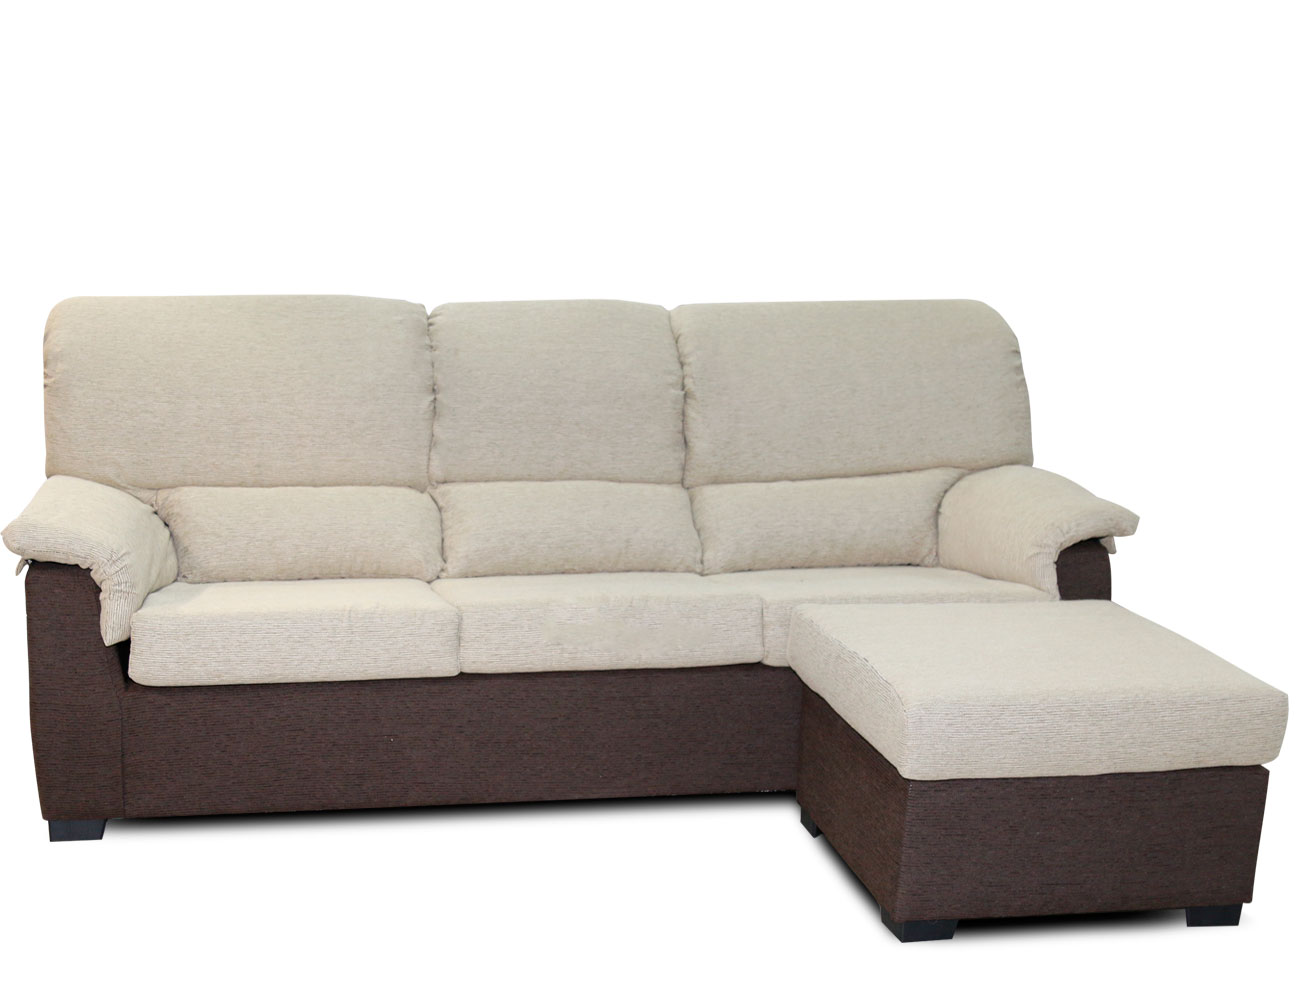 Sof Chaiselongue Barato Con Puf Reversible 15285 Factory Del  # Muebles Puffs Baratos